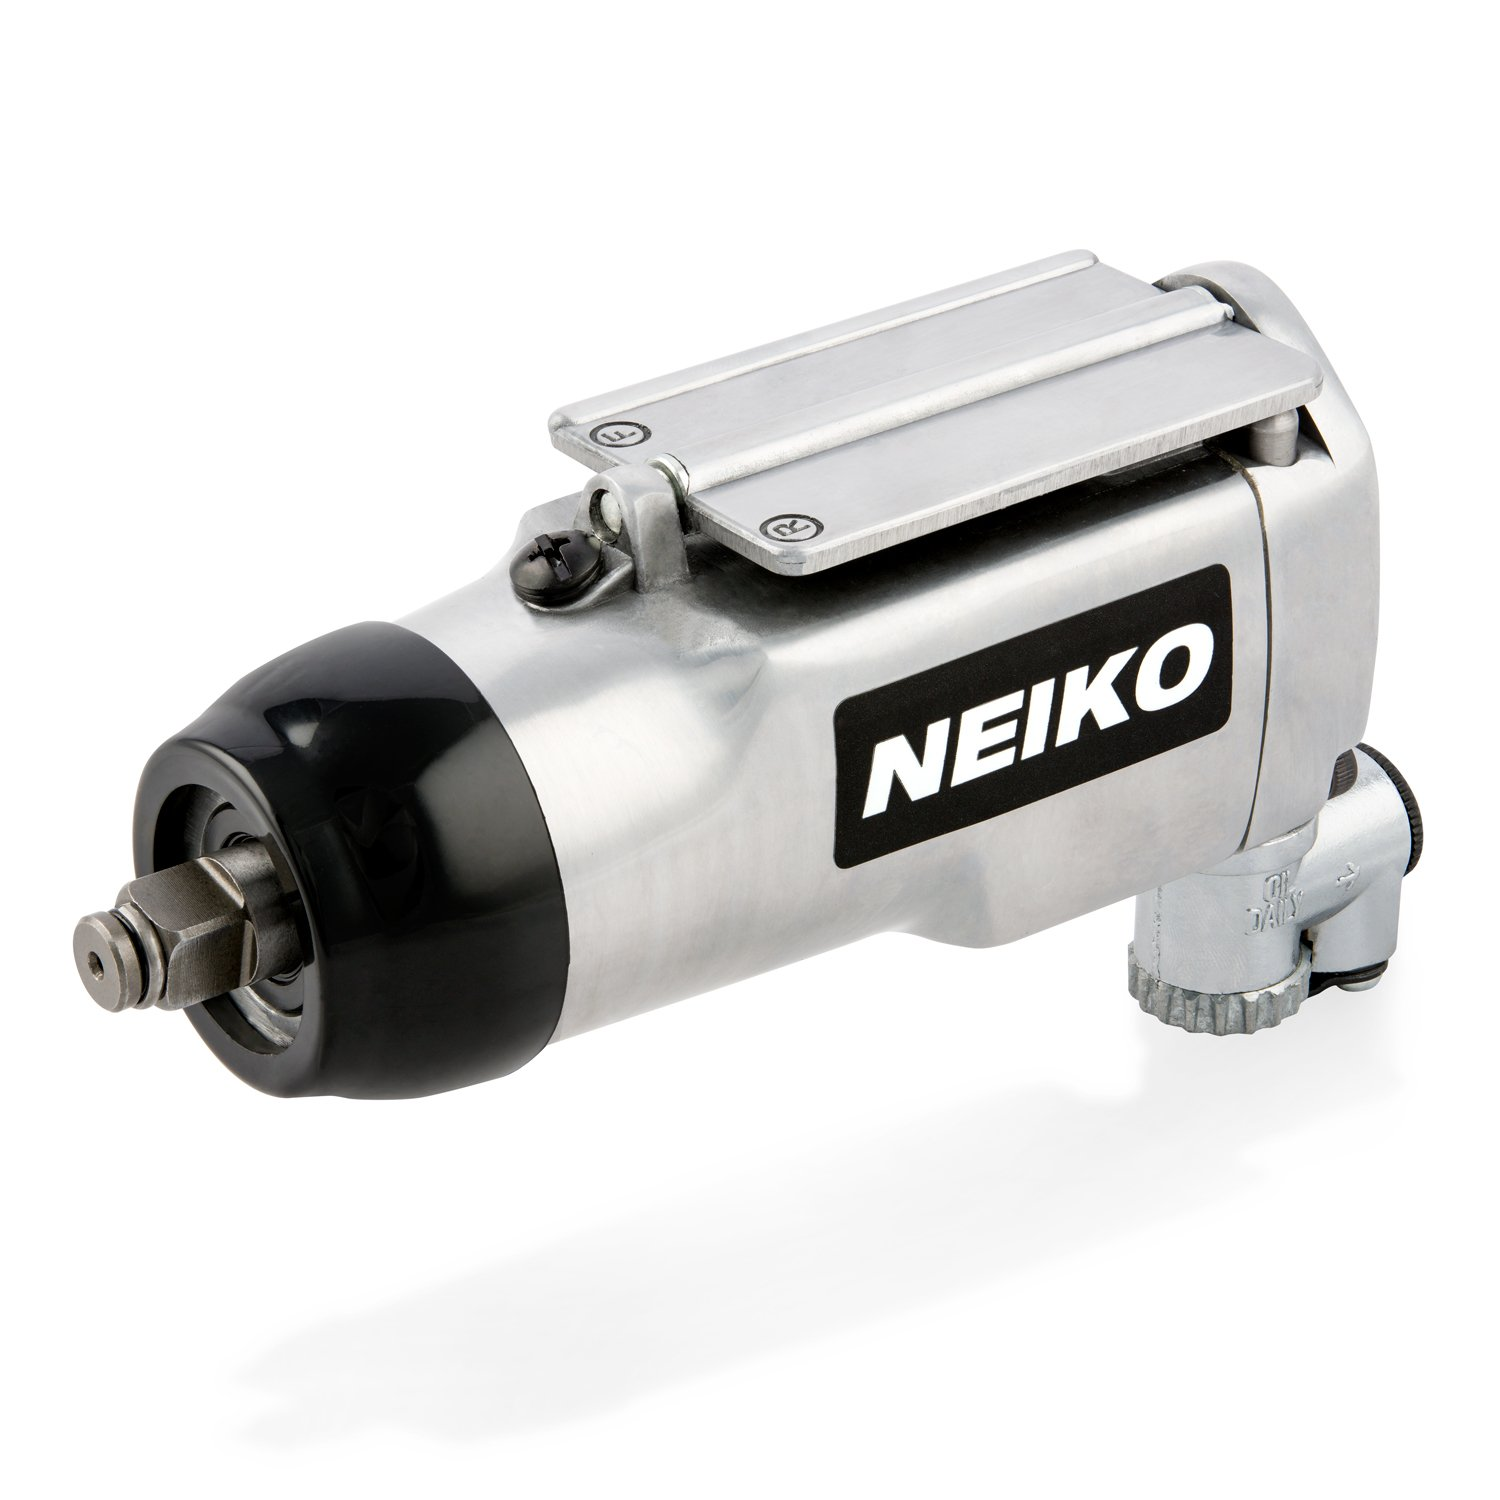 Neiko 30088A 3/8'' Butterfly Air Impact Wrench | 1/4'' NPT Air Inlet | 4 CFM, 90-120 PSI | 75 Ft-Lb, 10000 RPM